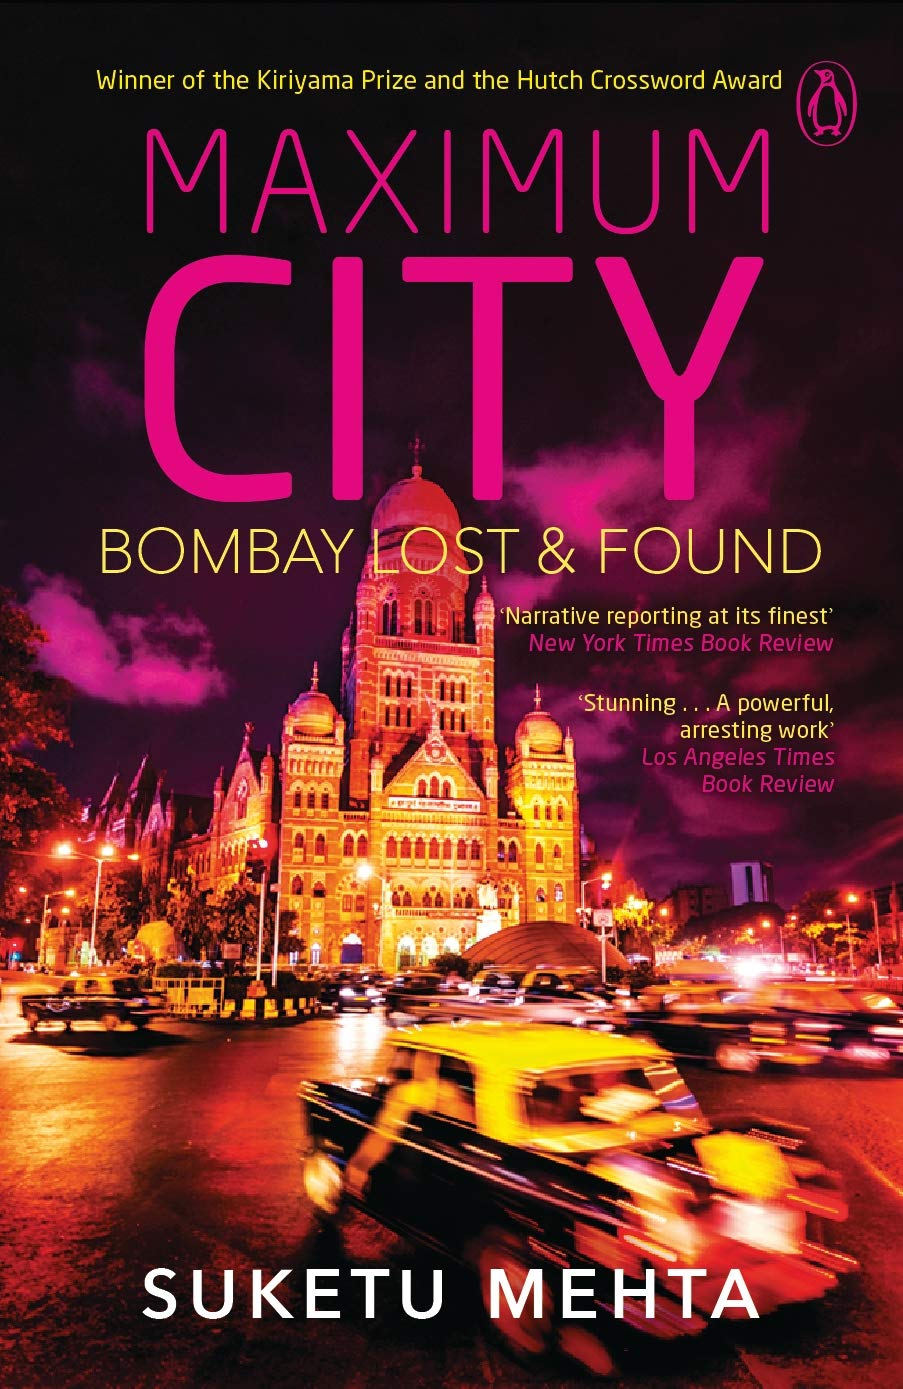 Buy Maximum City: Bombay Lost & Found Book Online at Low